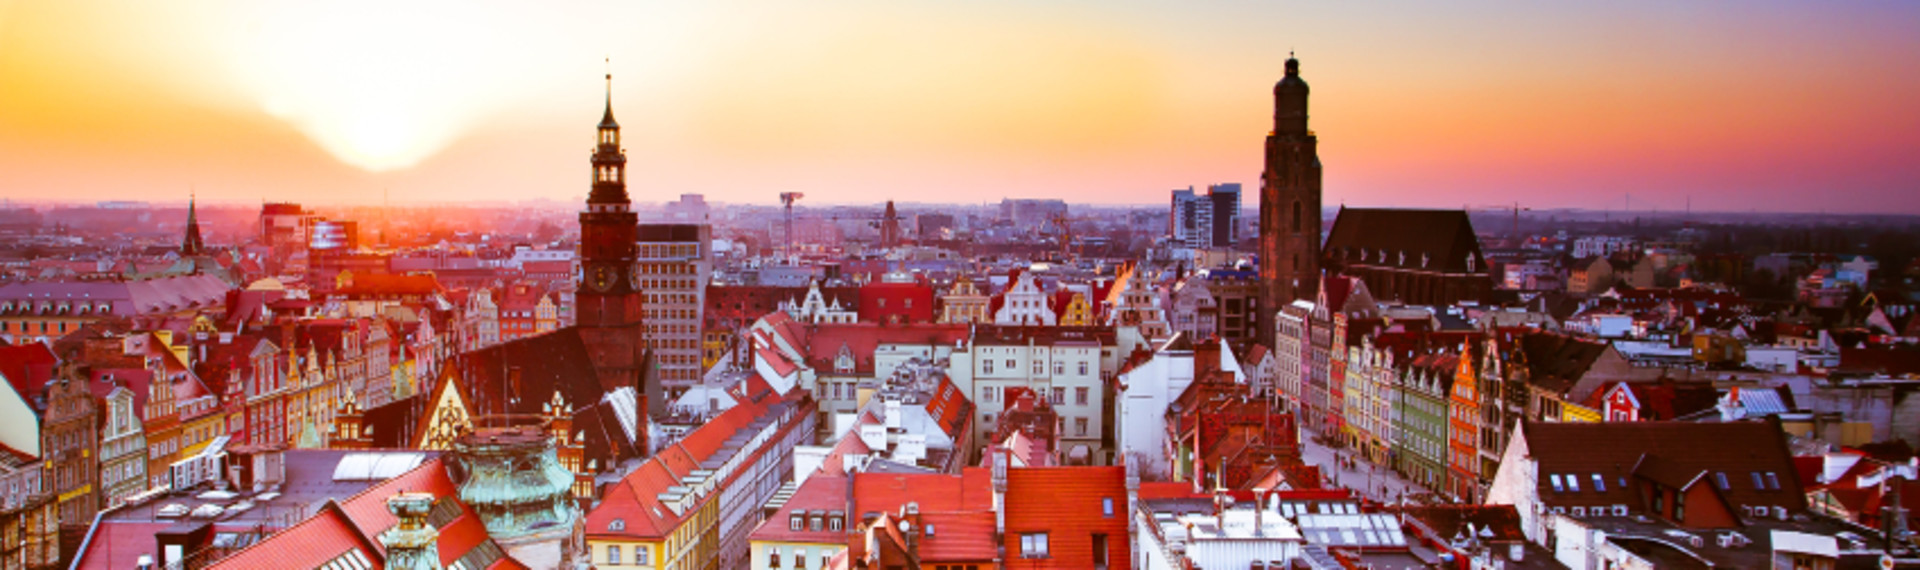 Sightbeering Tour Wroclaw | Pissup Tours